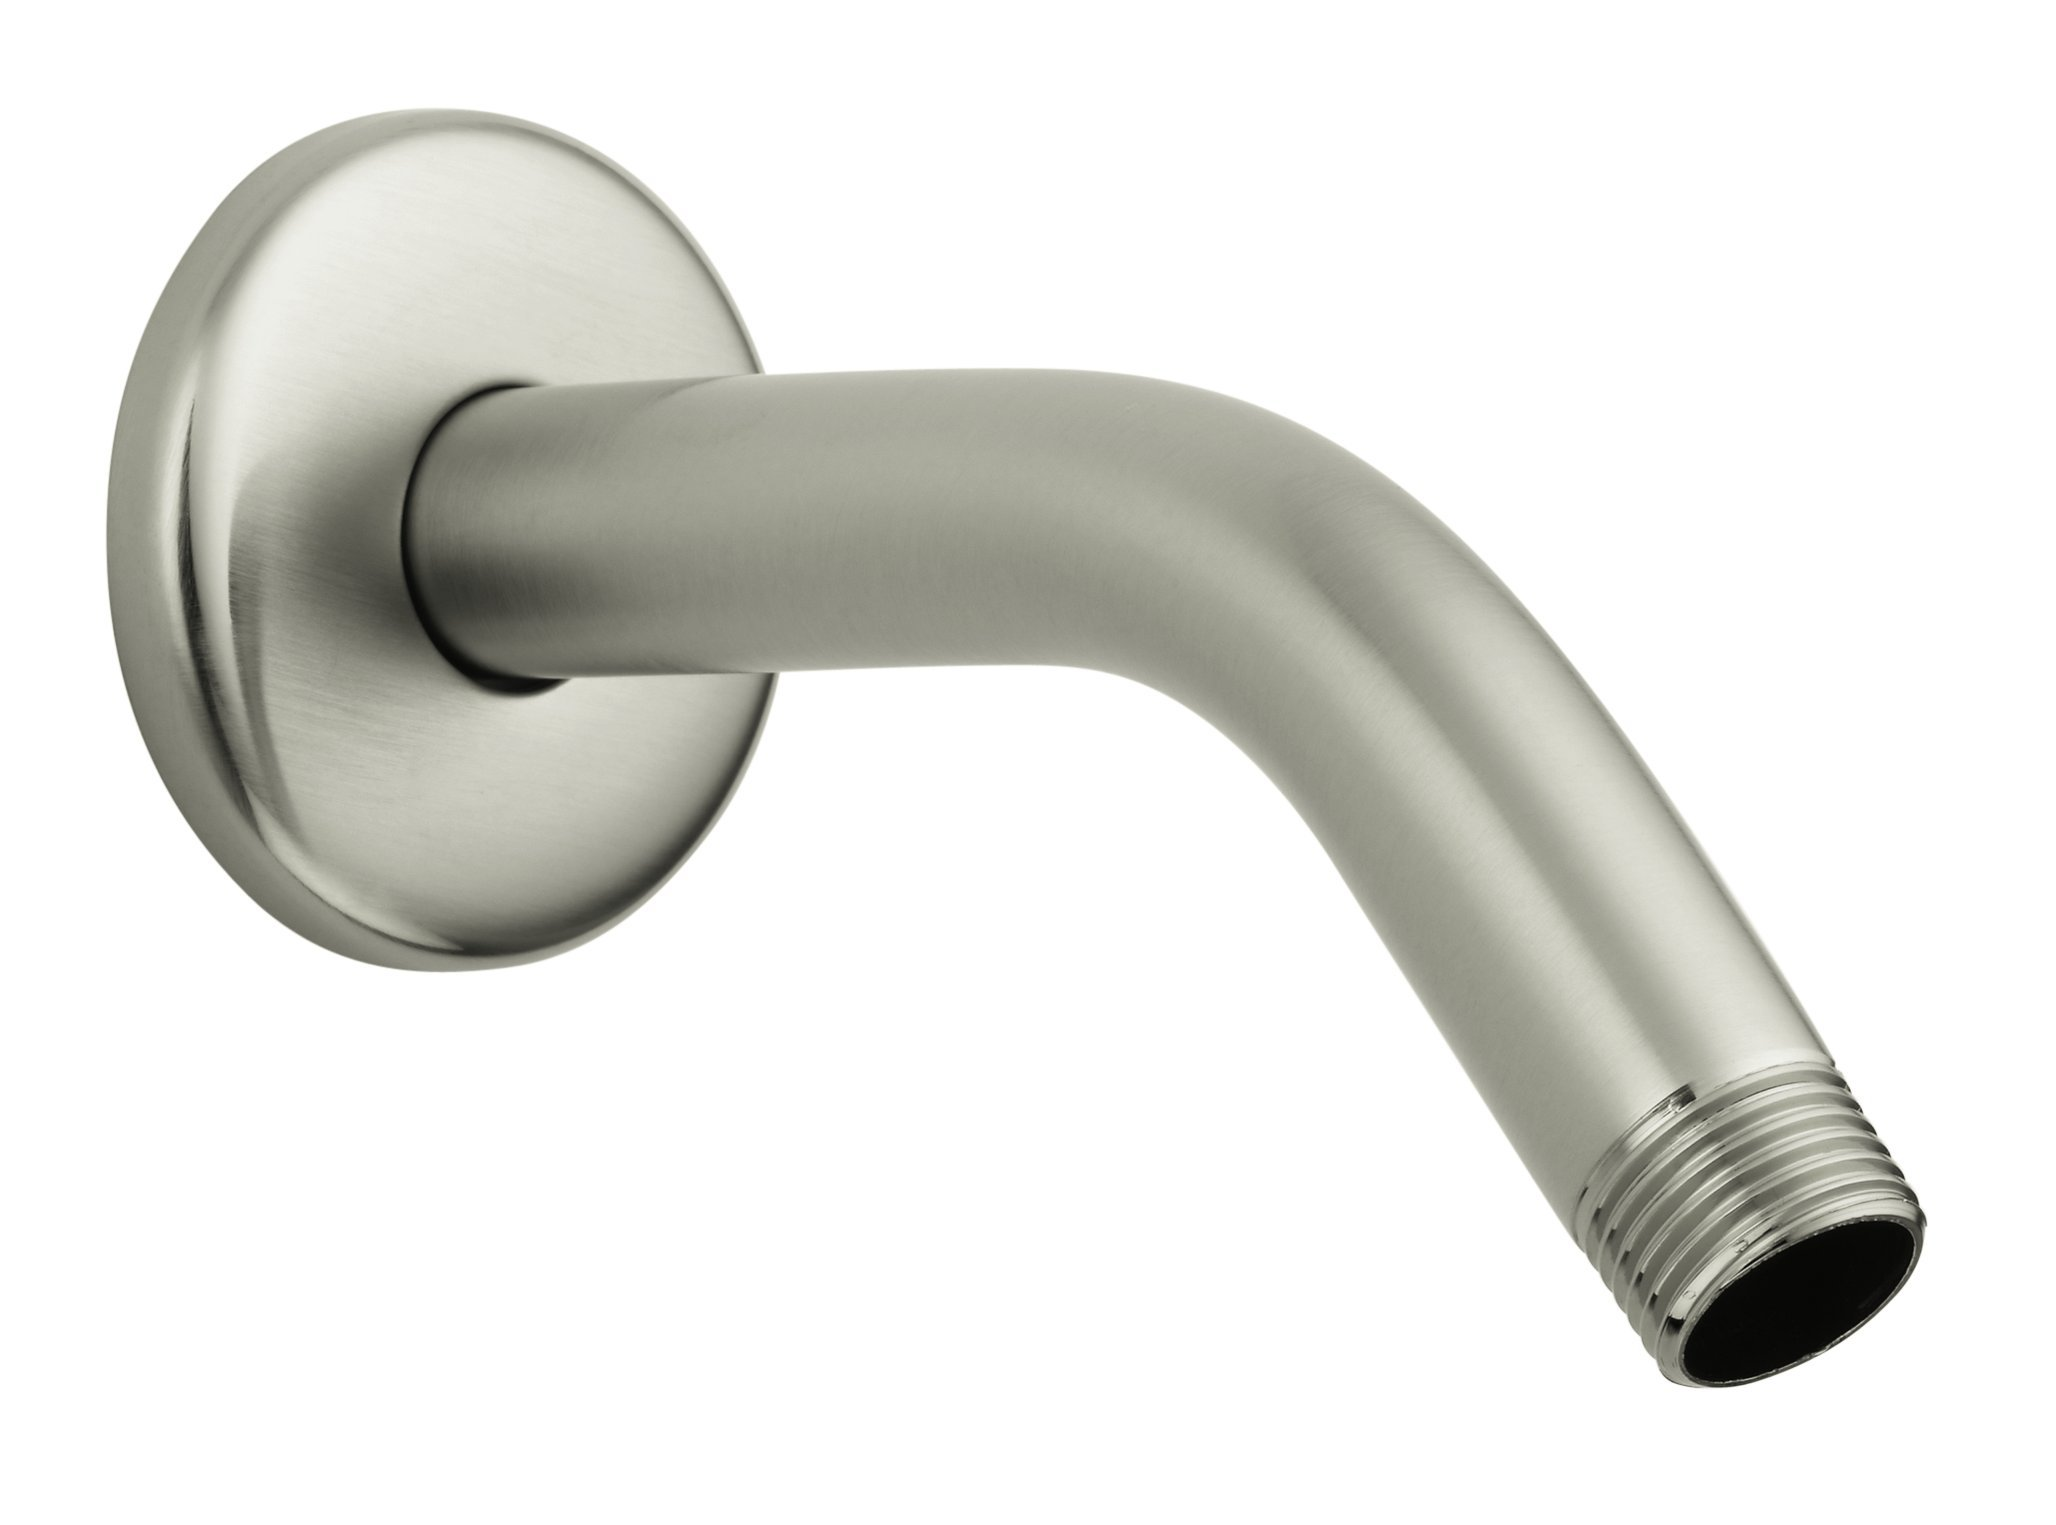 Hansgrohe 27411823 Standard Shower Arm and Flange, 6-Inch, Brushed Nickel